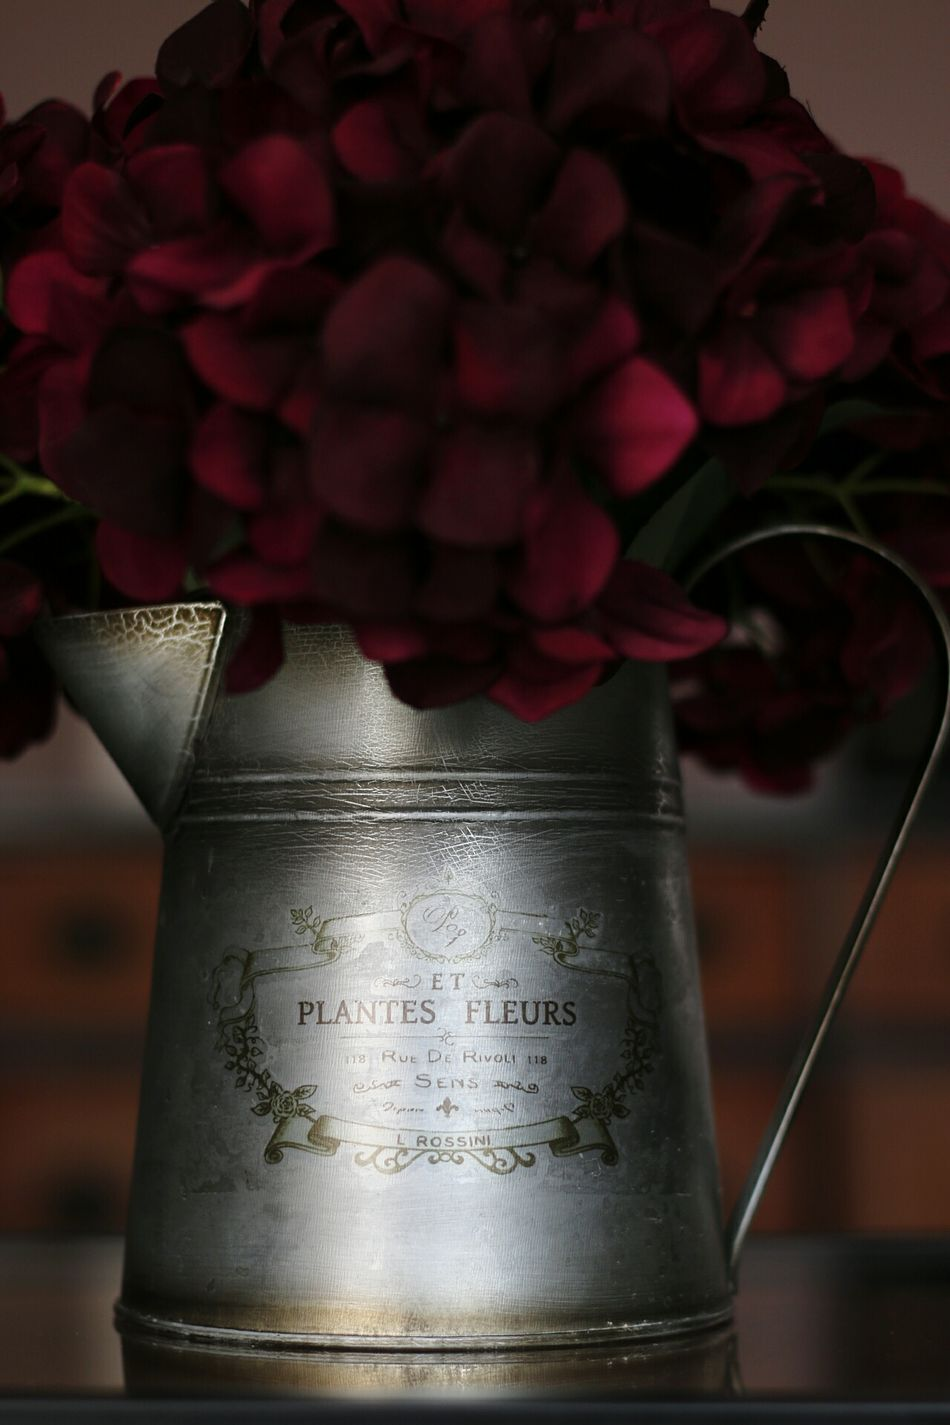 French watercan with flowers. French Flowers French Flowers Flowerpot Watercan